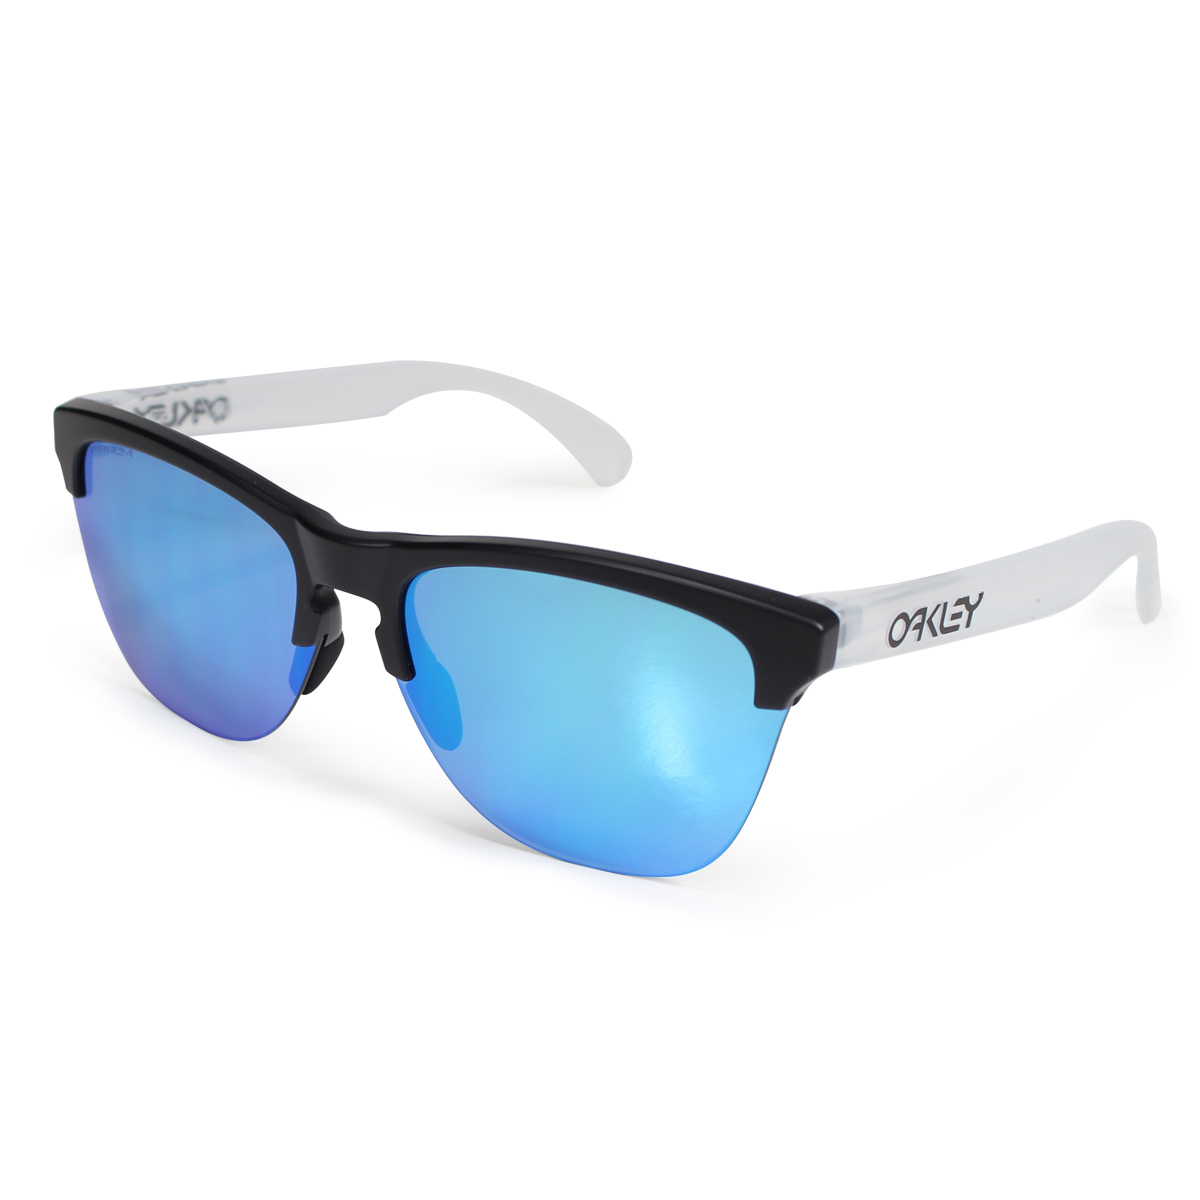 89210dfc1e ALLSPORTS  Oakley Frogskins lite Oakley sunglasses frog skin light US FIT  men gap Dis black OO9374-02  6 8 Shinnyu load   186